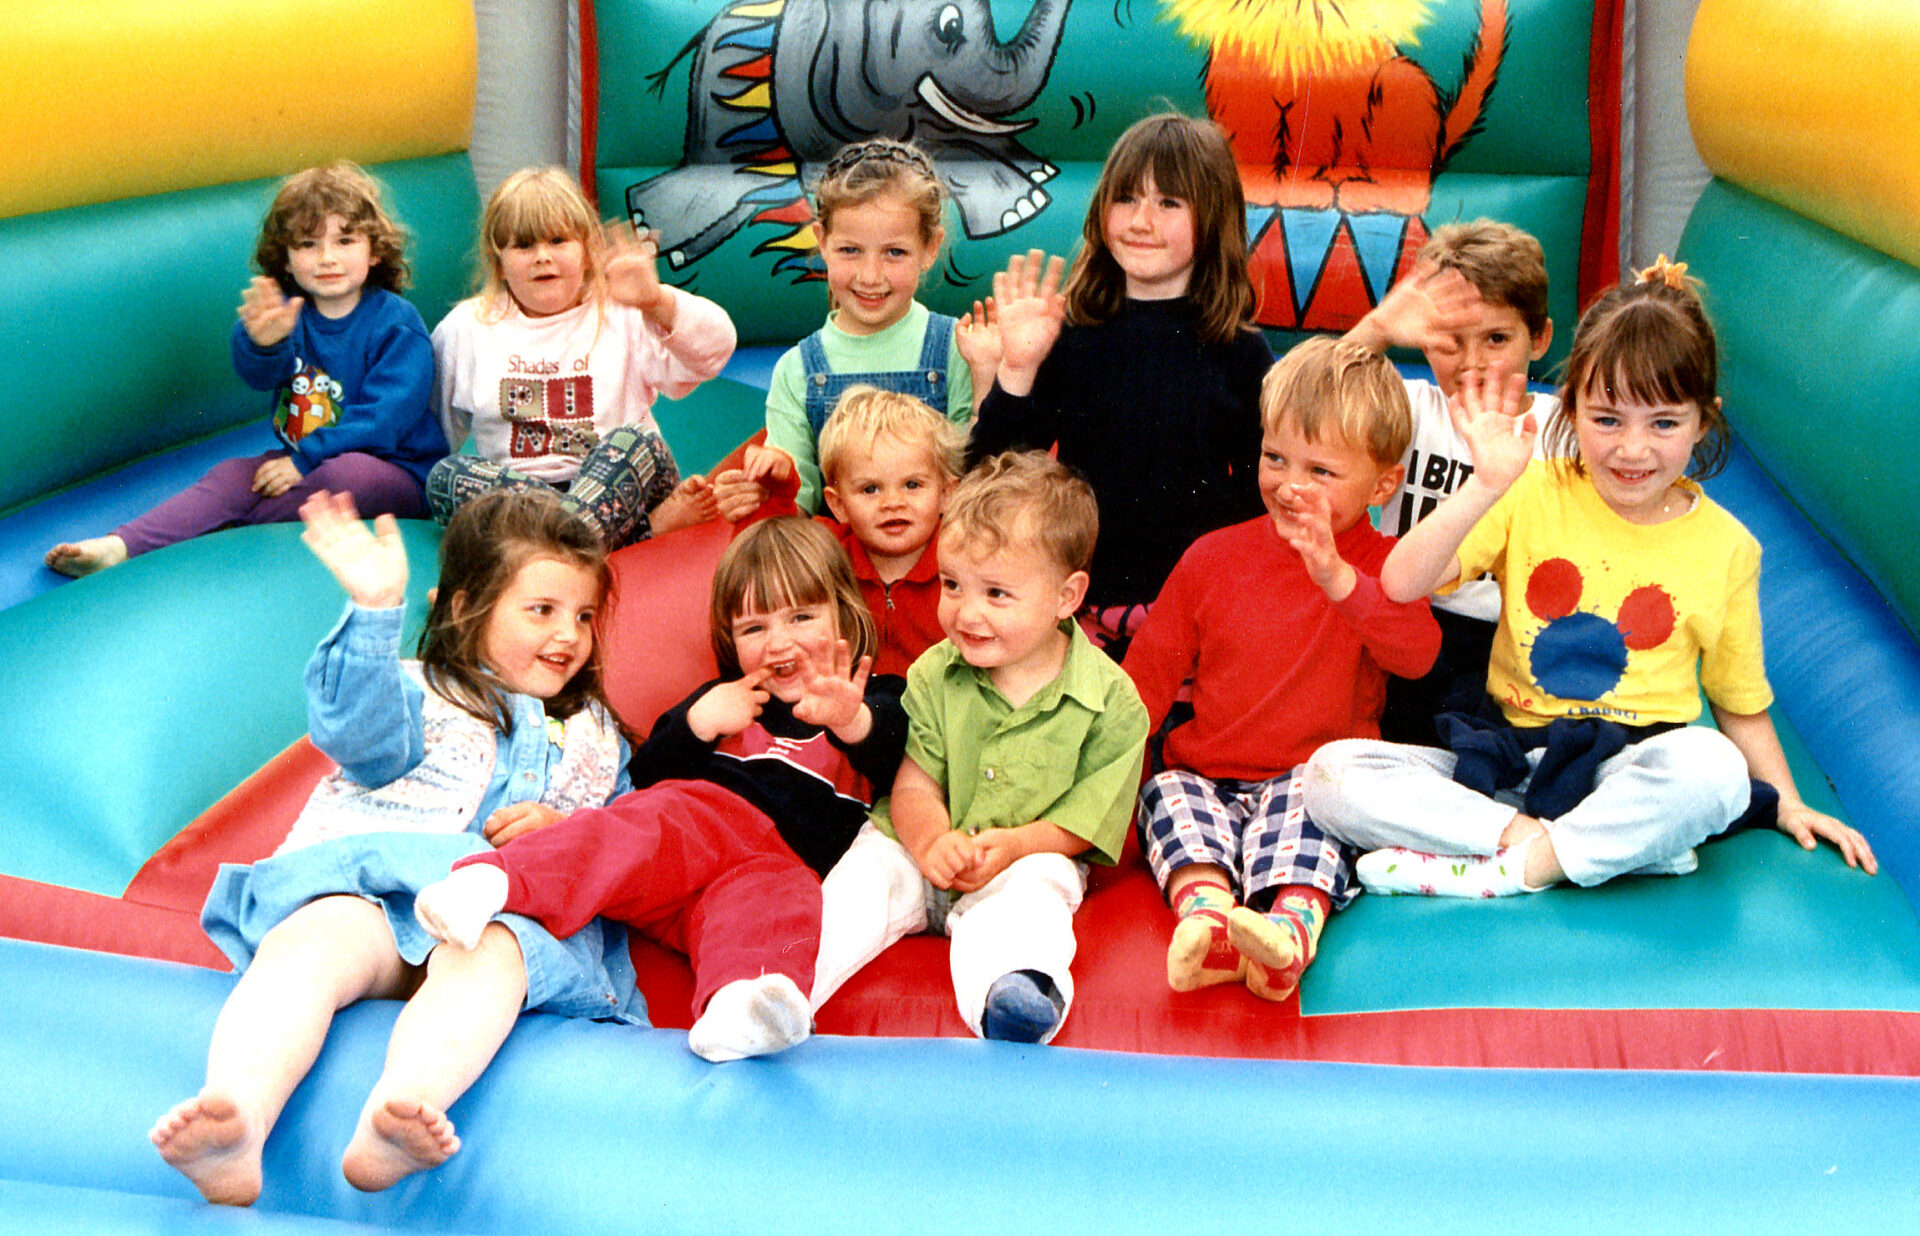 What a jolly bunch of little Chagford children. I recognise all the faces. This was 1998. 22 years ago.